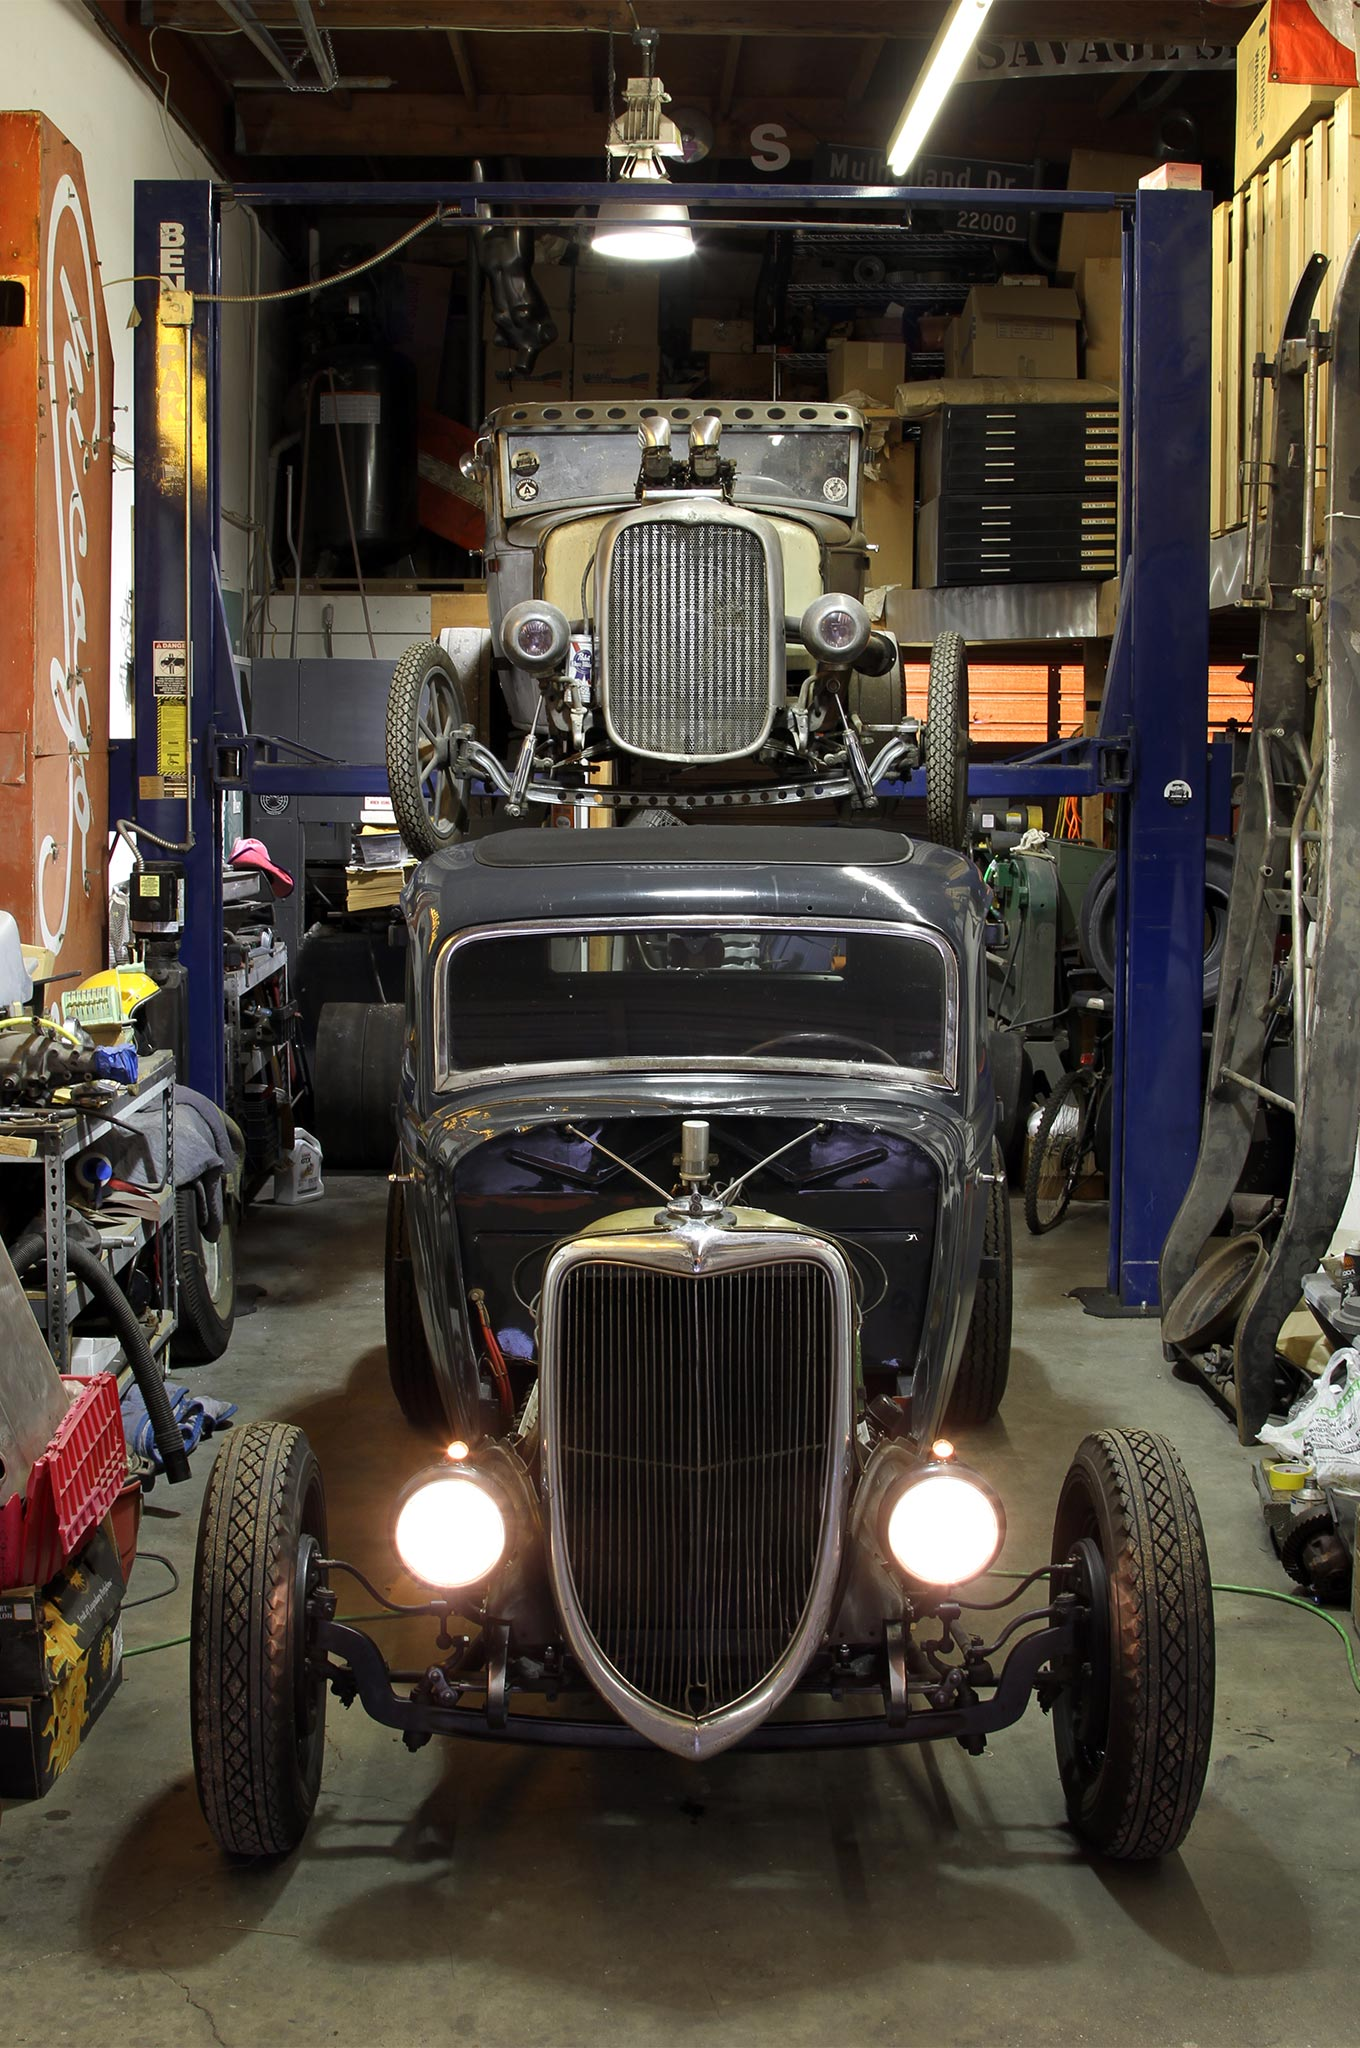 Aaron's workshop is quite small, but there's enough room for the '34 coupe and his '30 Model A coupe. The shop is also filled with all sorts of vintage race car and hot rod parts, plus an abundance of old neon and other automotive related signage.